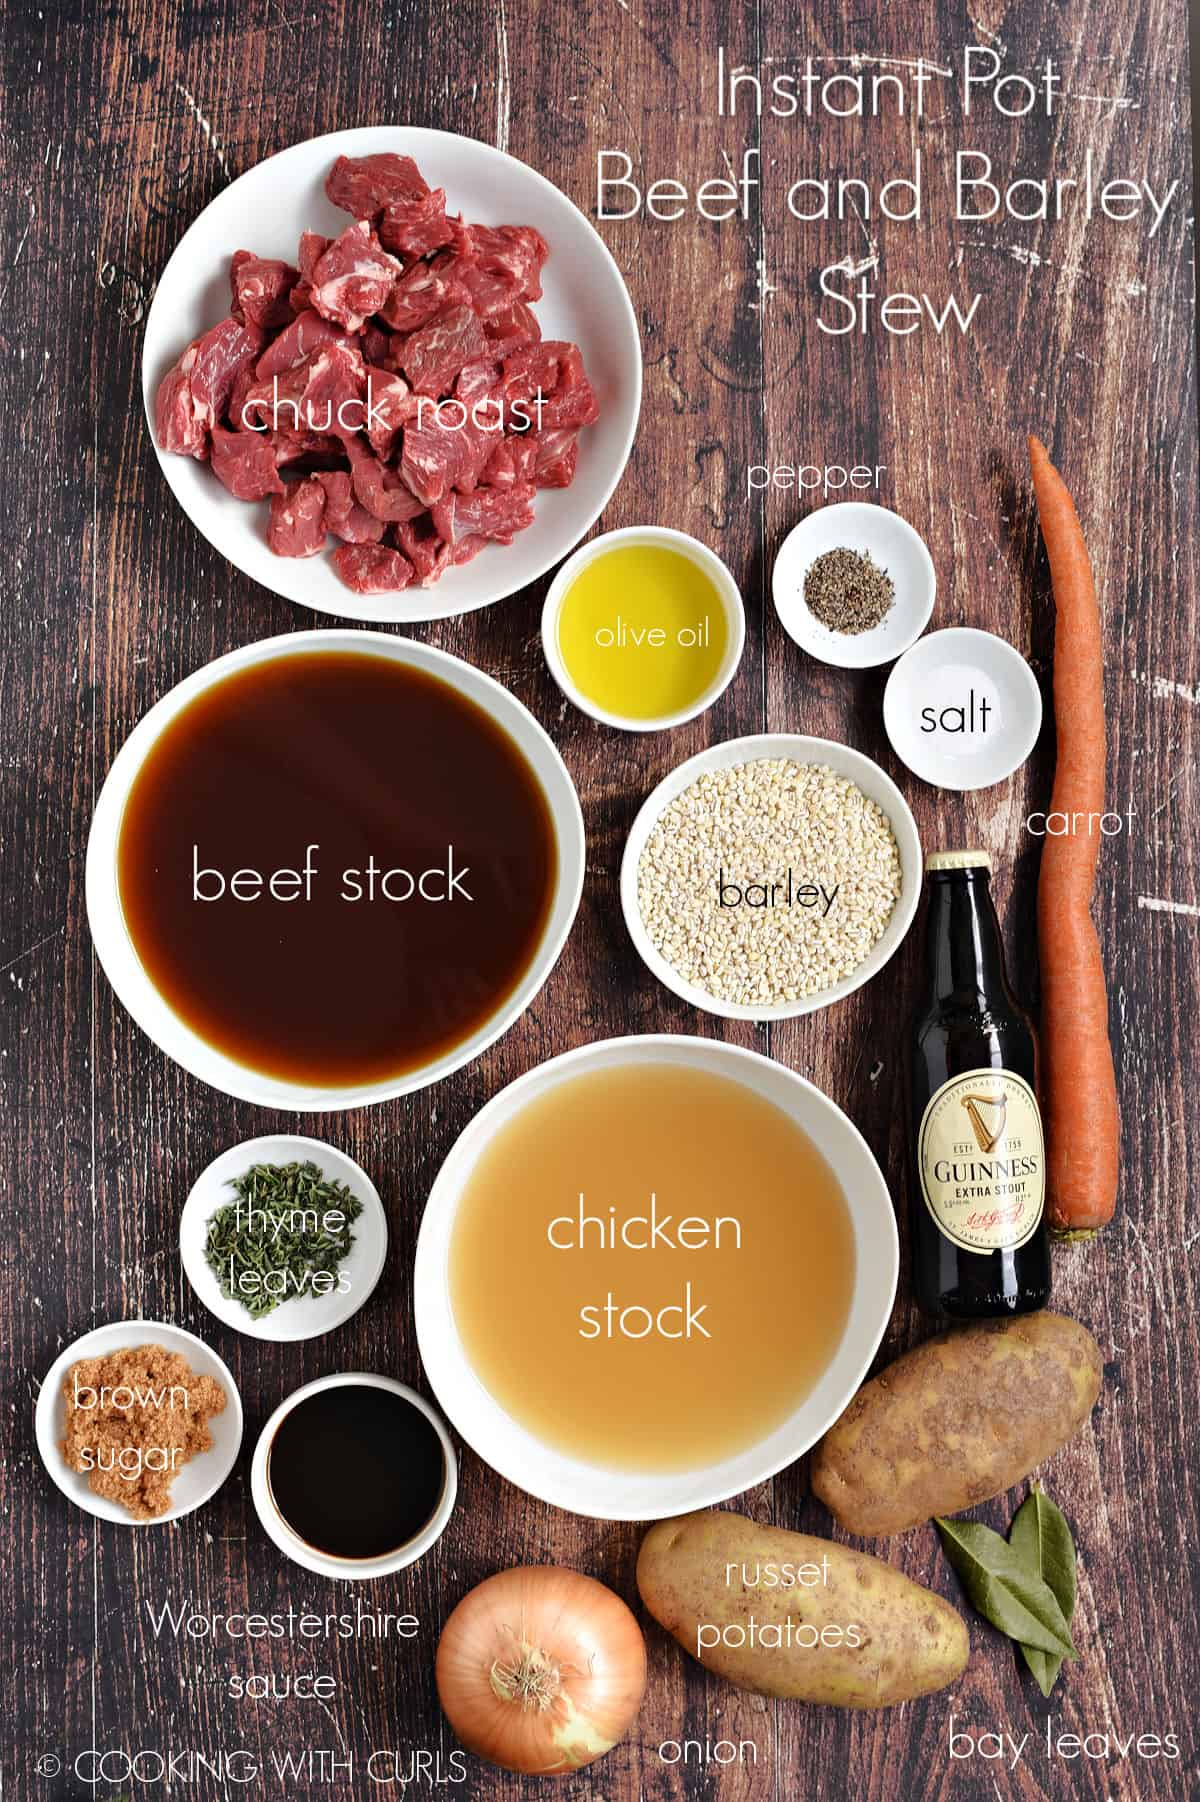 Instant Pot Beef and Barley Stew ingredients in white bowls.